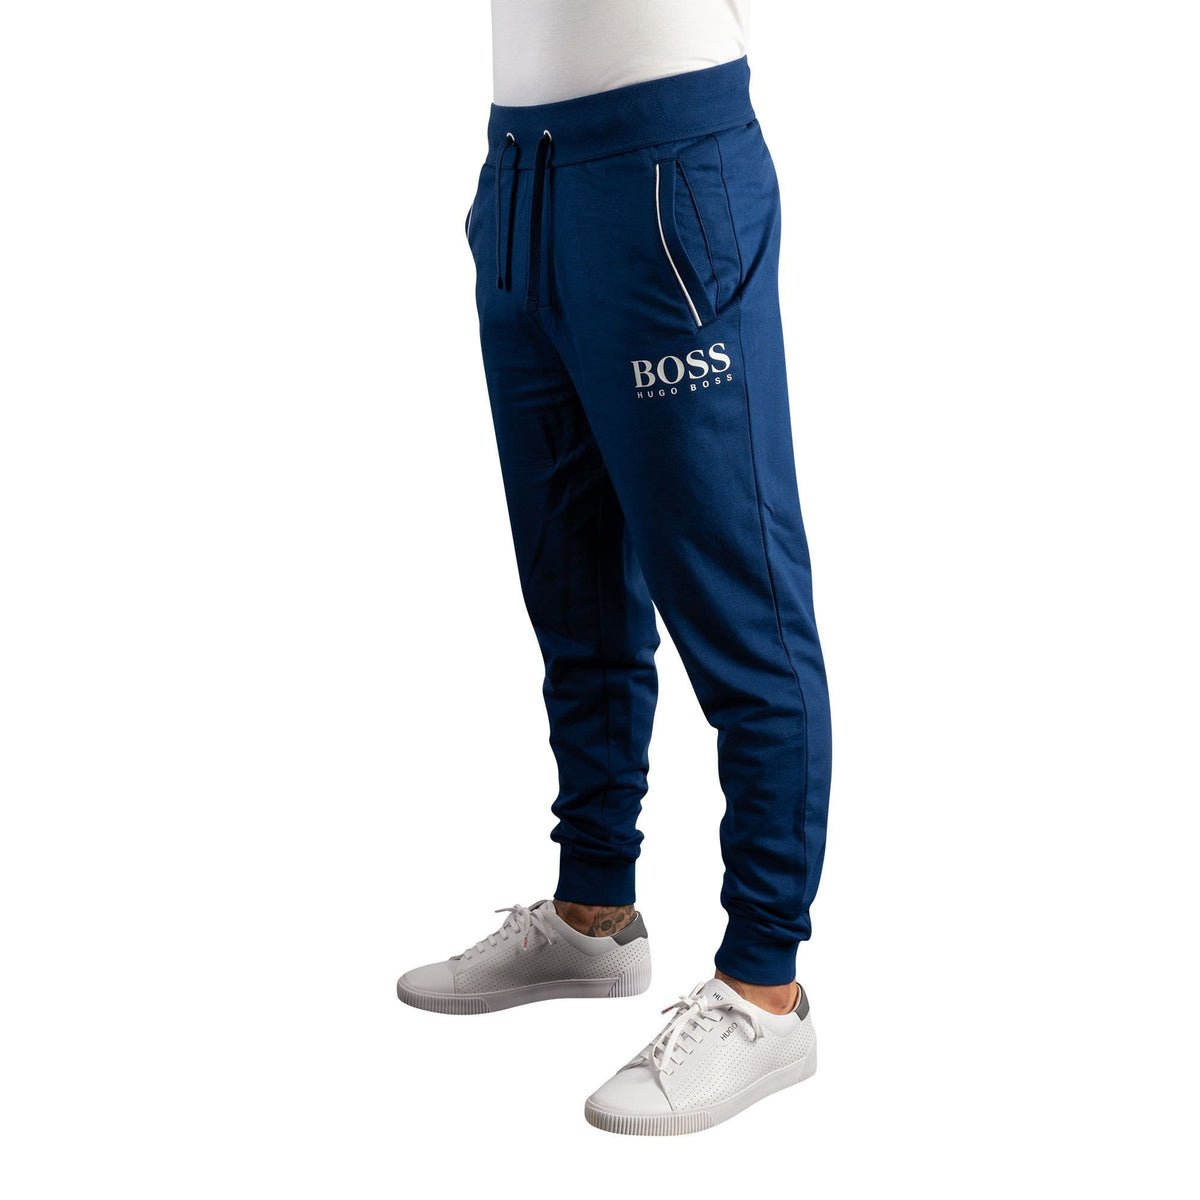 BOSS Cuffed Loungewear Trousers In French Terry With Printed Logo